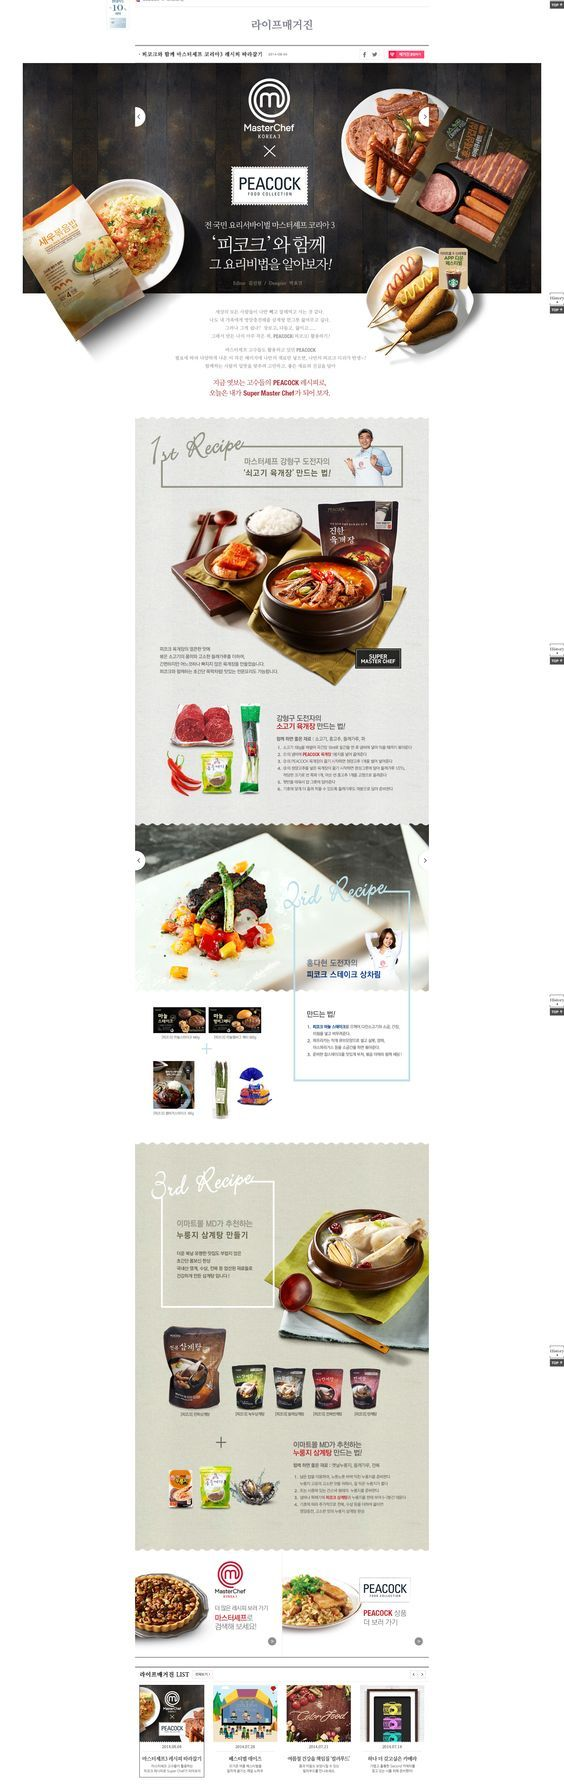 This website design for Master Chef Korea has a real photographic quality to it--looks like a magazine! It presents the food very well.: